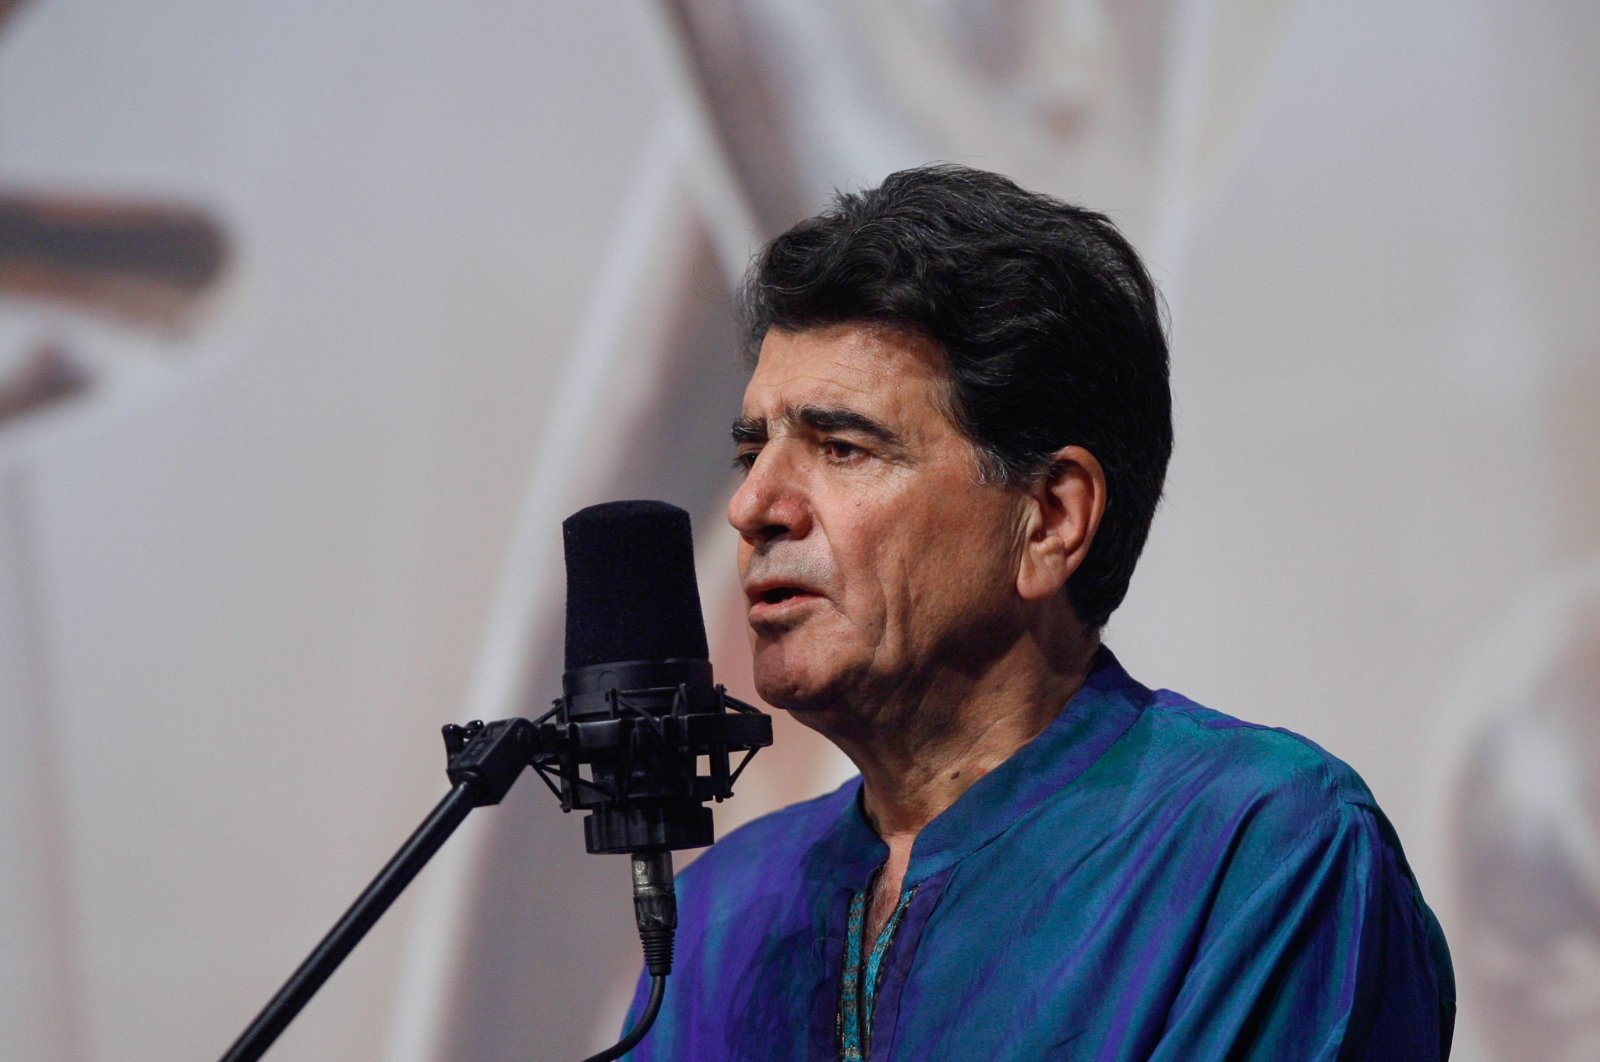 Iran's legendary singer, instrumentalist, and composer Mohammad-Reza Shajarian singing before a microphone in the capital Tehran, Oct. 20, 2008. (AFP Photo)